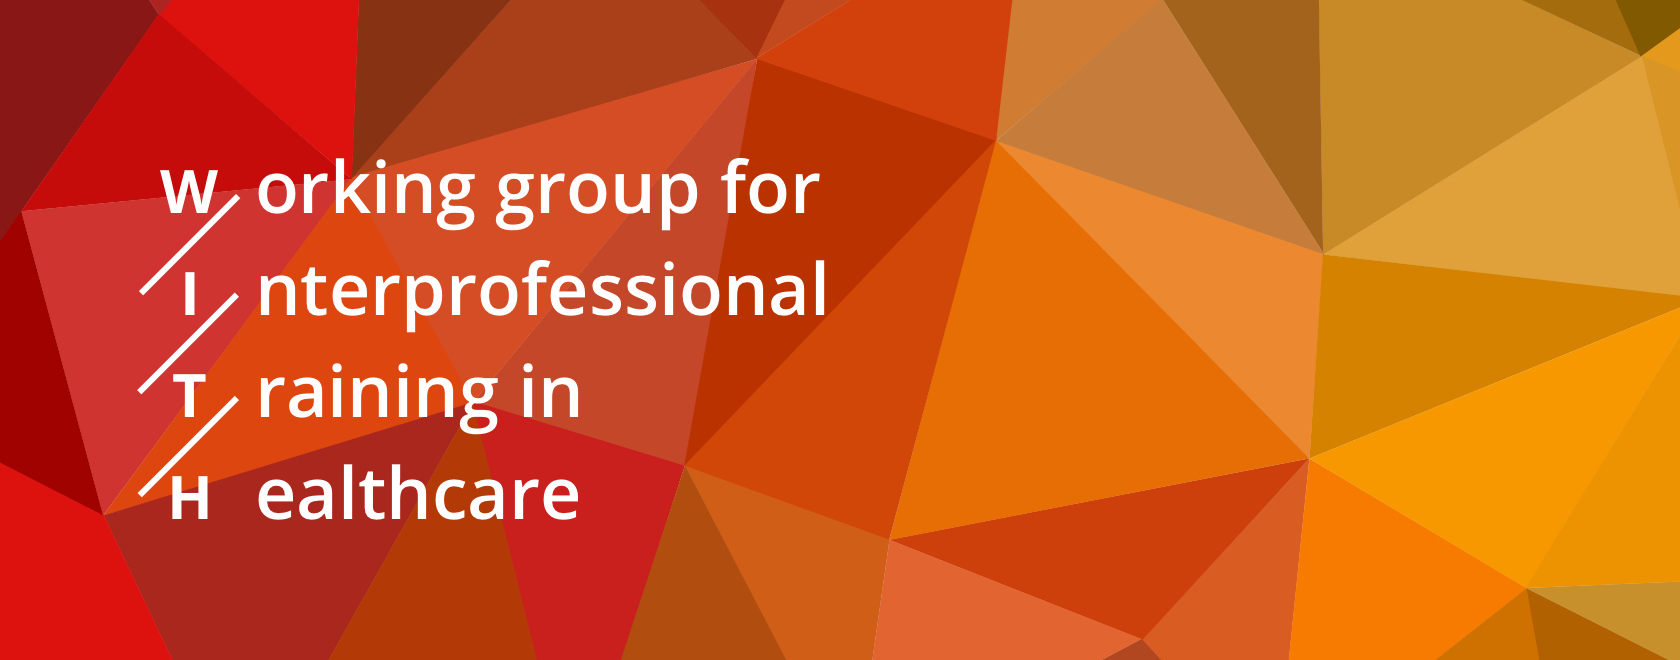 Working group for interprofessional training in healthcare - WITH